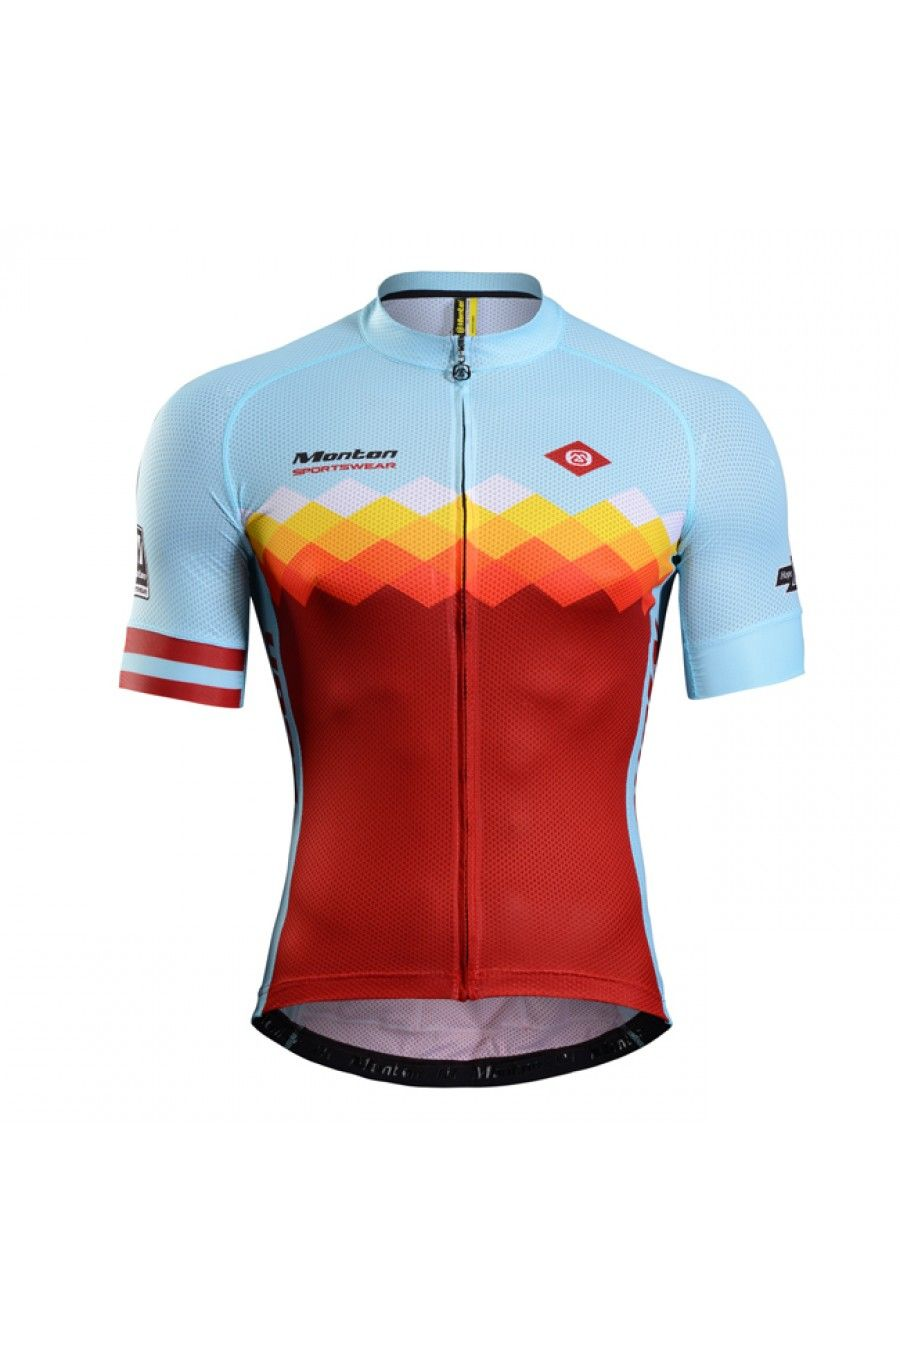 Cool Cycling Jersey Cycling Outfit Bike Jersey Design Custom